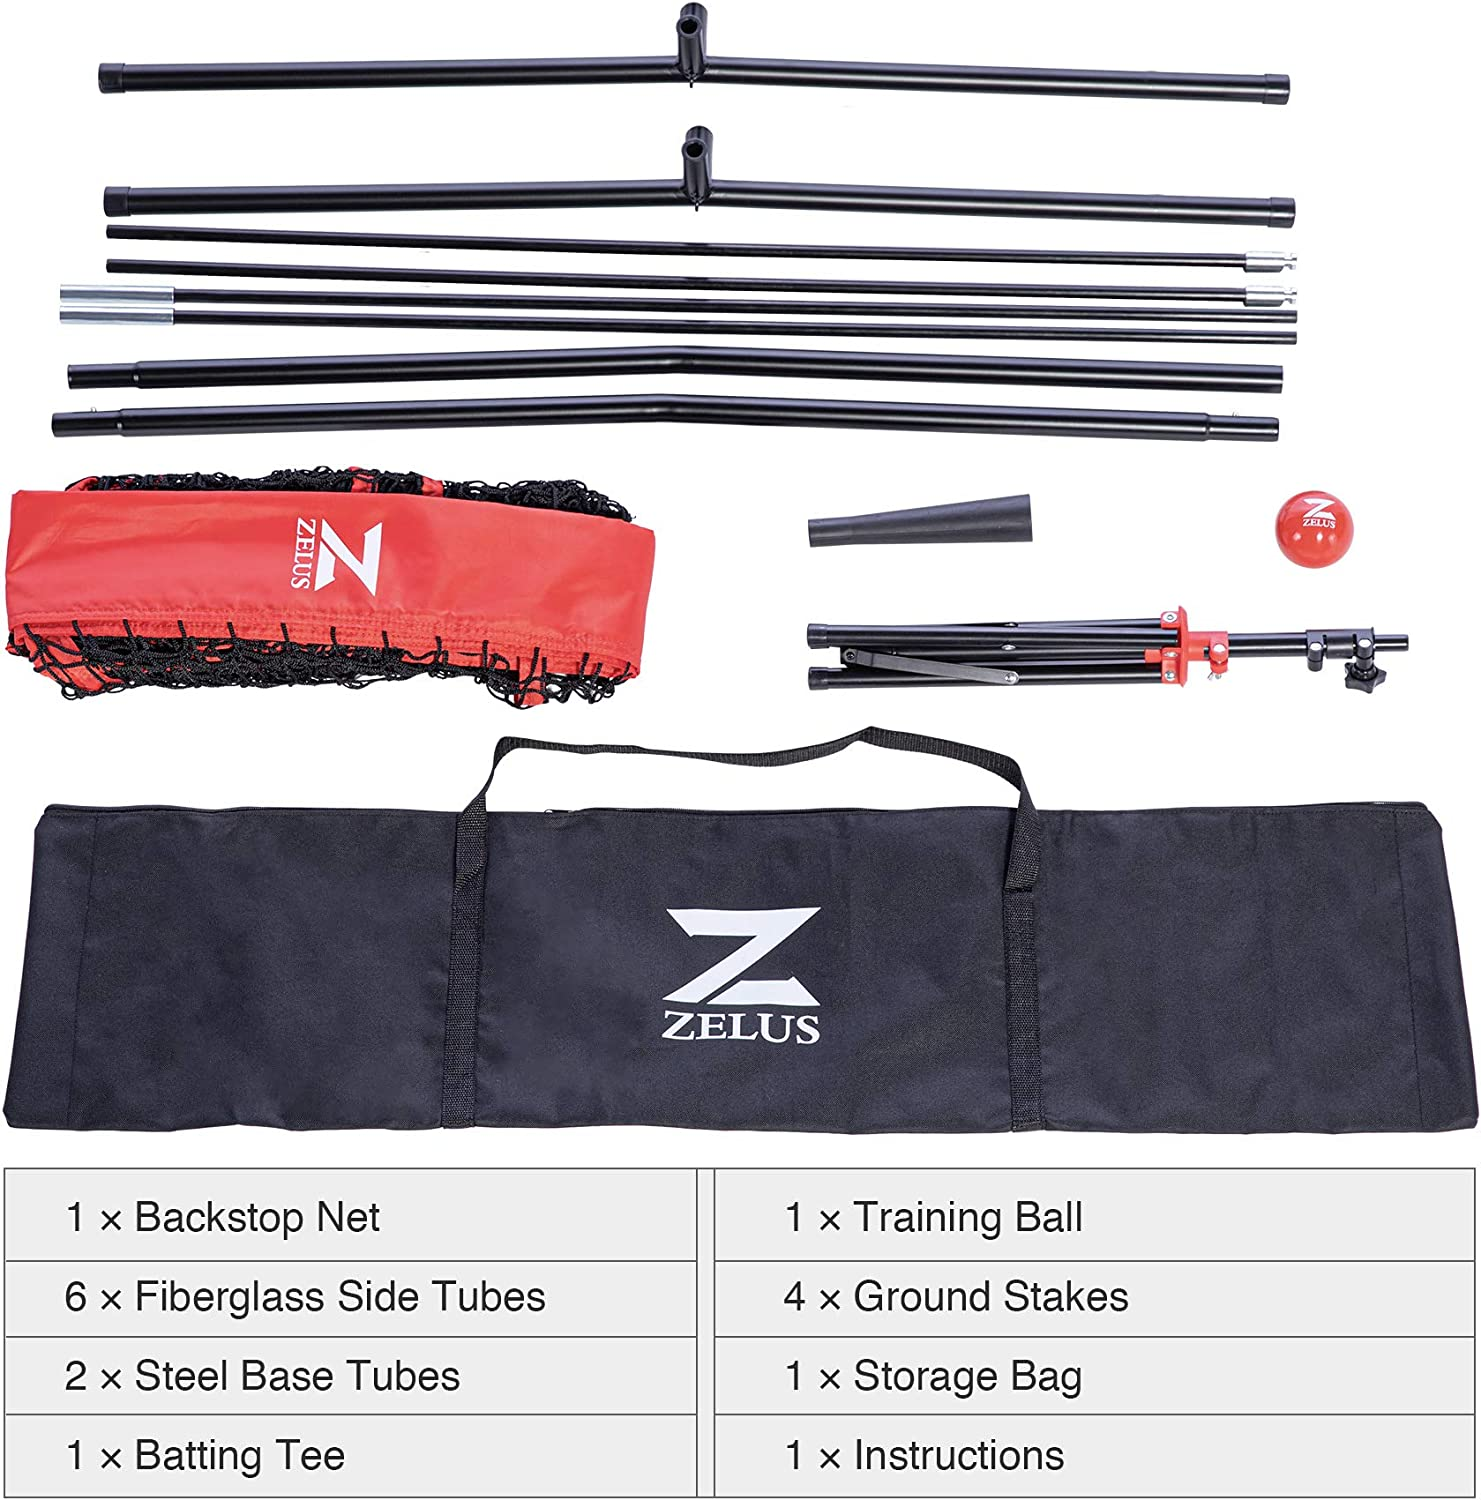 2.8 16oz Weighted Baseball and Carry Bag for Batting Hitting and Pitching ZELUS 7x7ft Baseball Softball Practice Net Portable Baseball Net with Tee